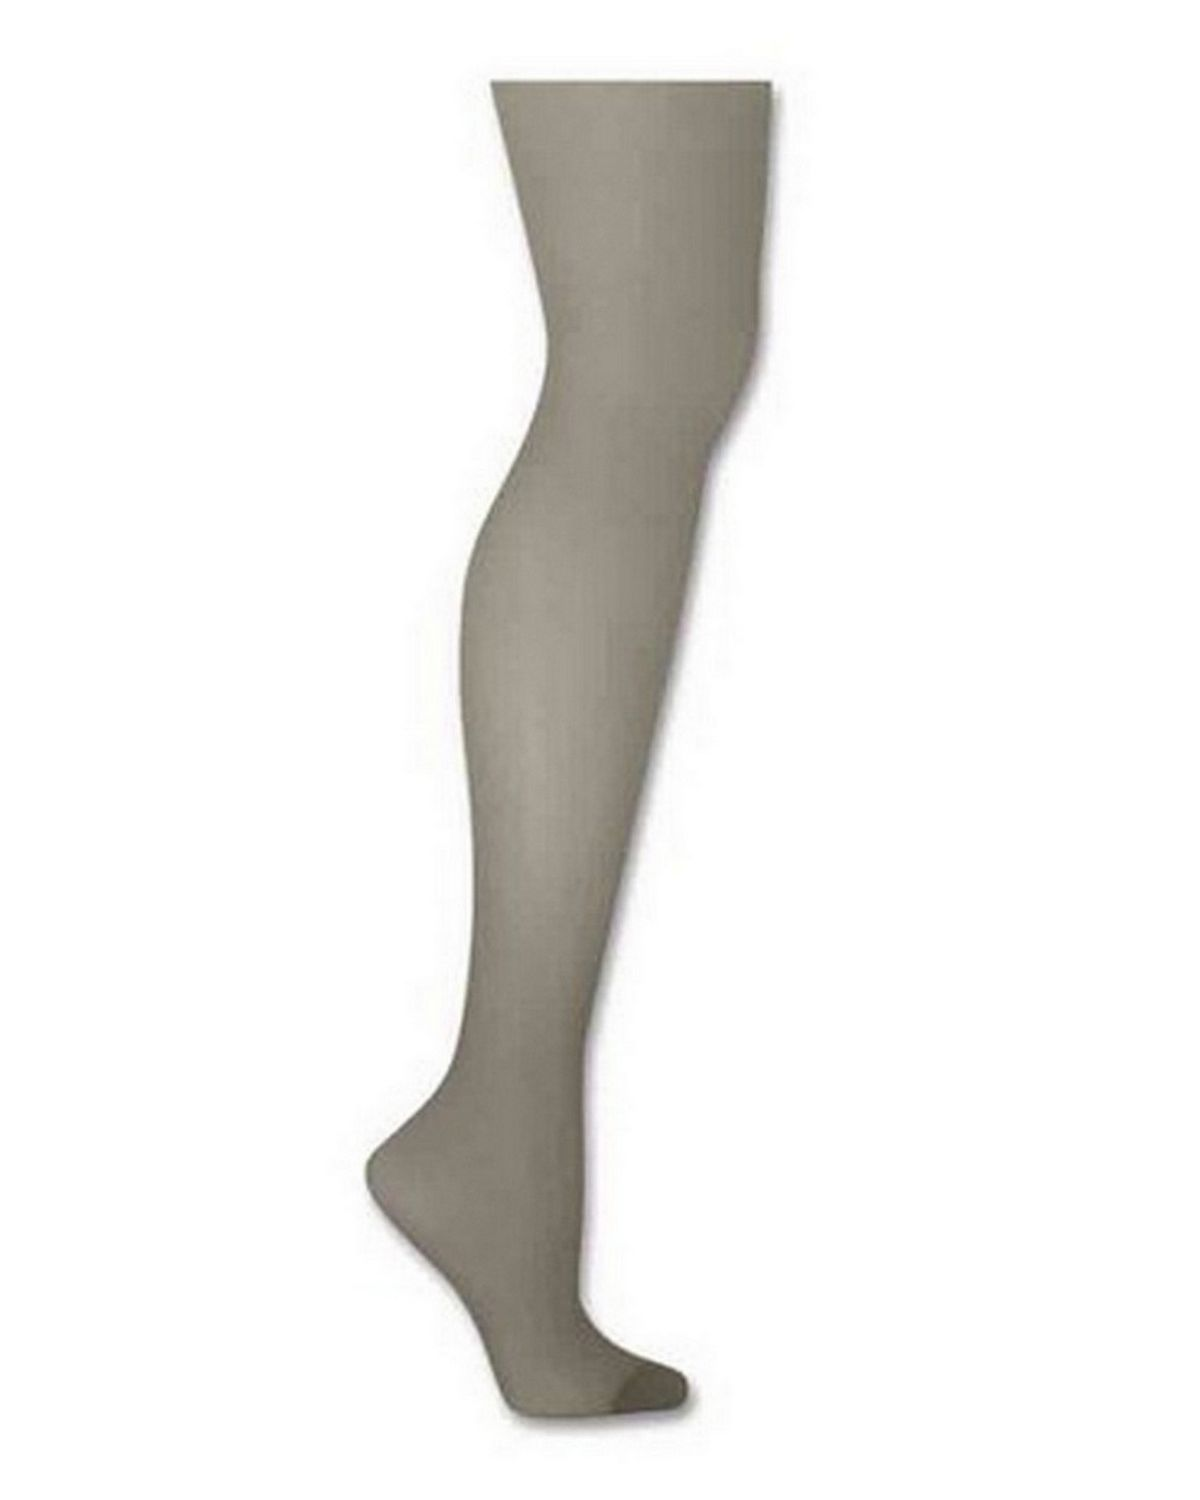 Hanes 00718 Silk Reflections Control Top Reinforced Toe Pantyhose - Quicksilver - AB 00718